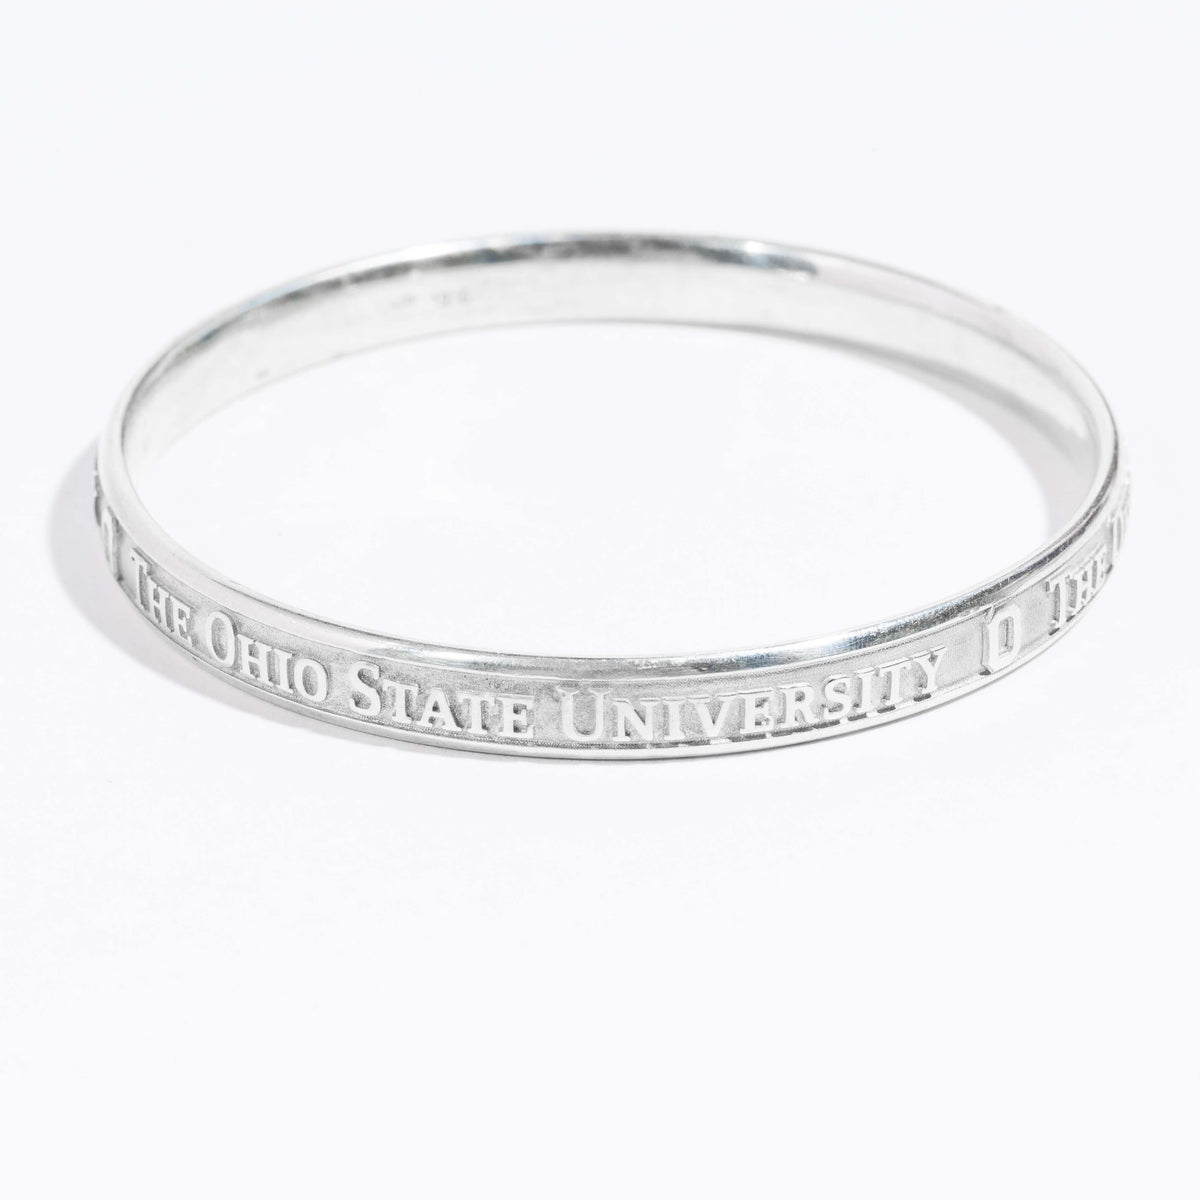 The Ohio State University Bangle